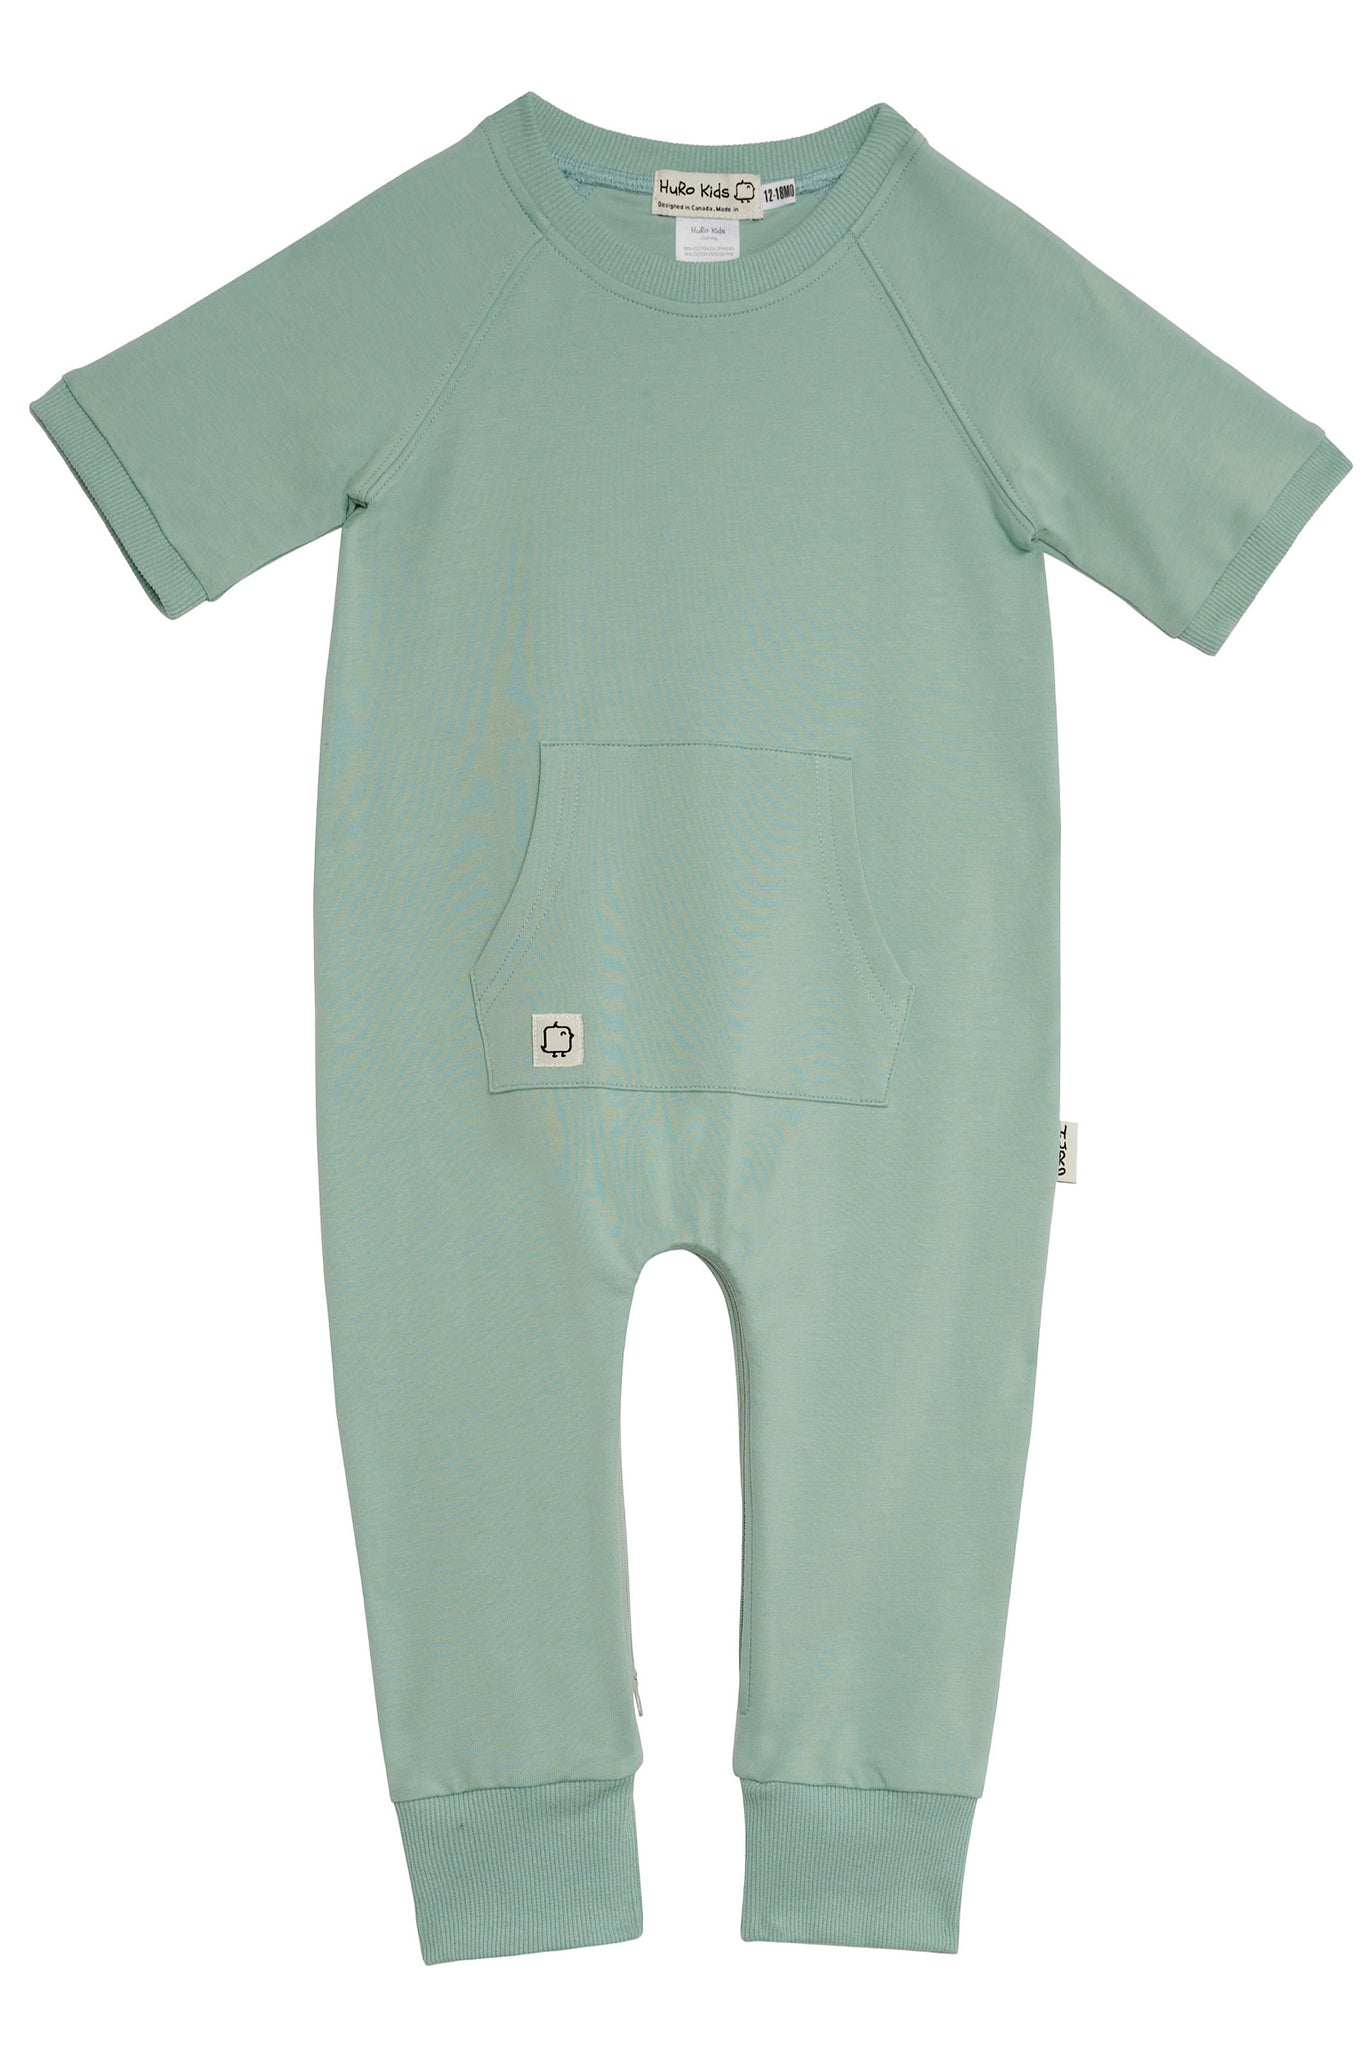 Short Sleeve Romper - Bora (Pre-Order /Ships after April 5th) - HuRo Kids Clothing